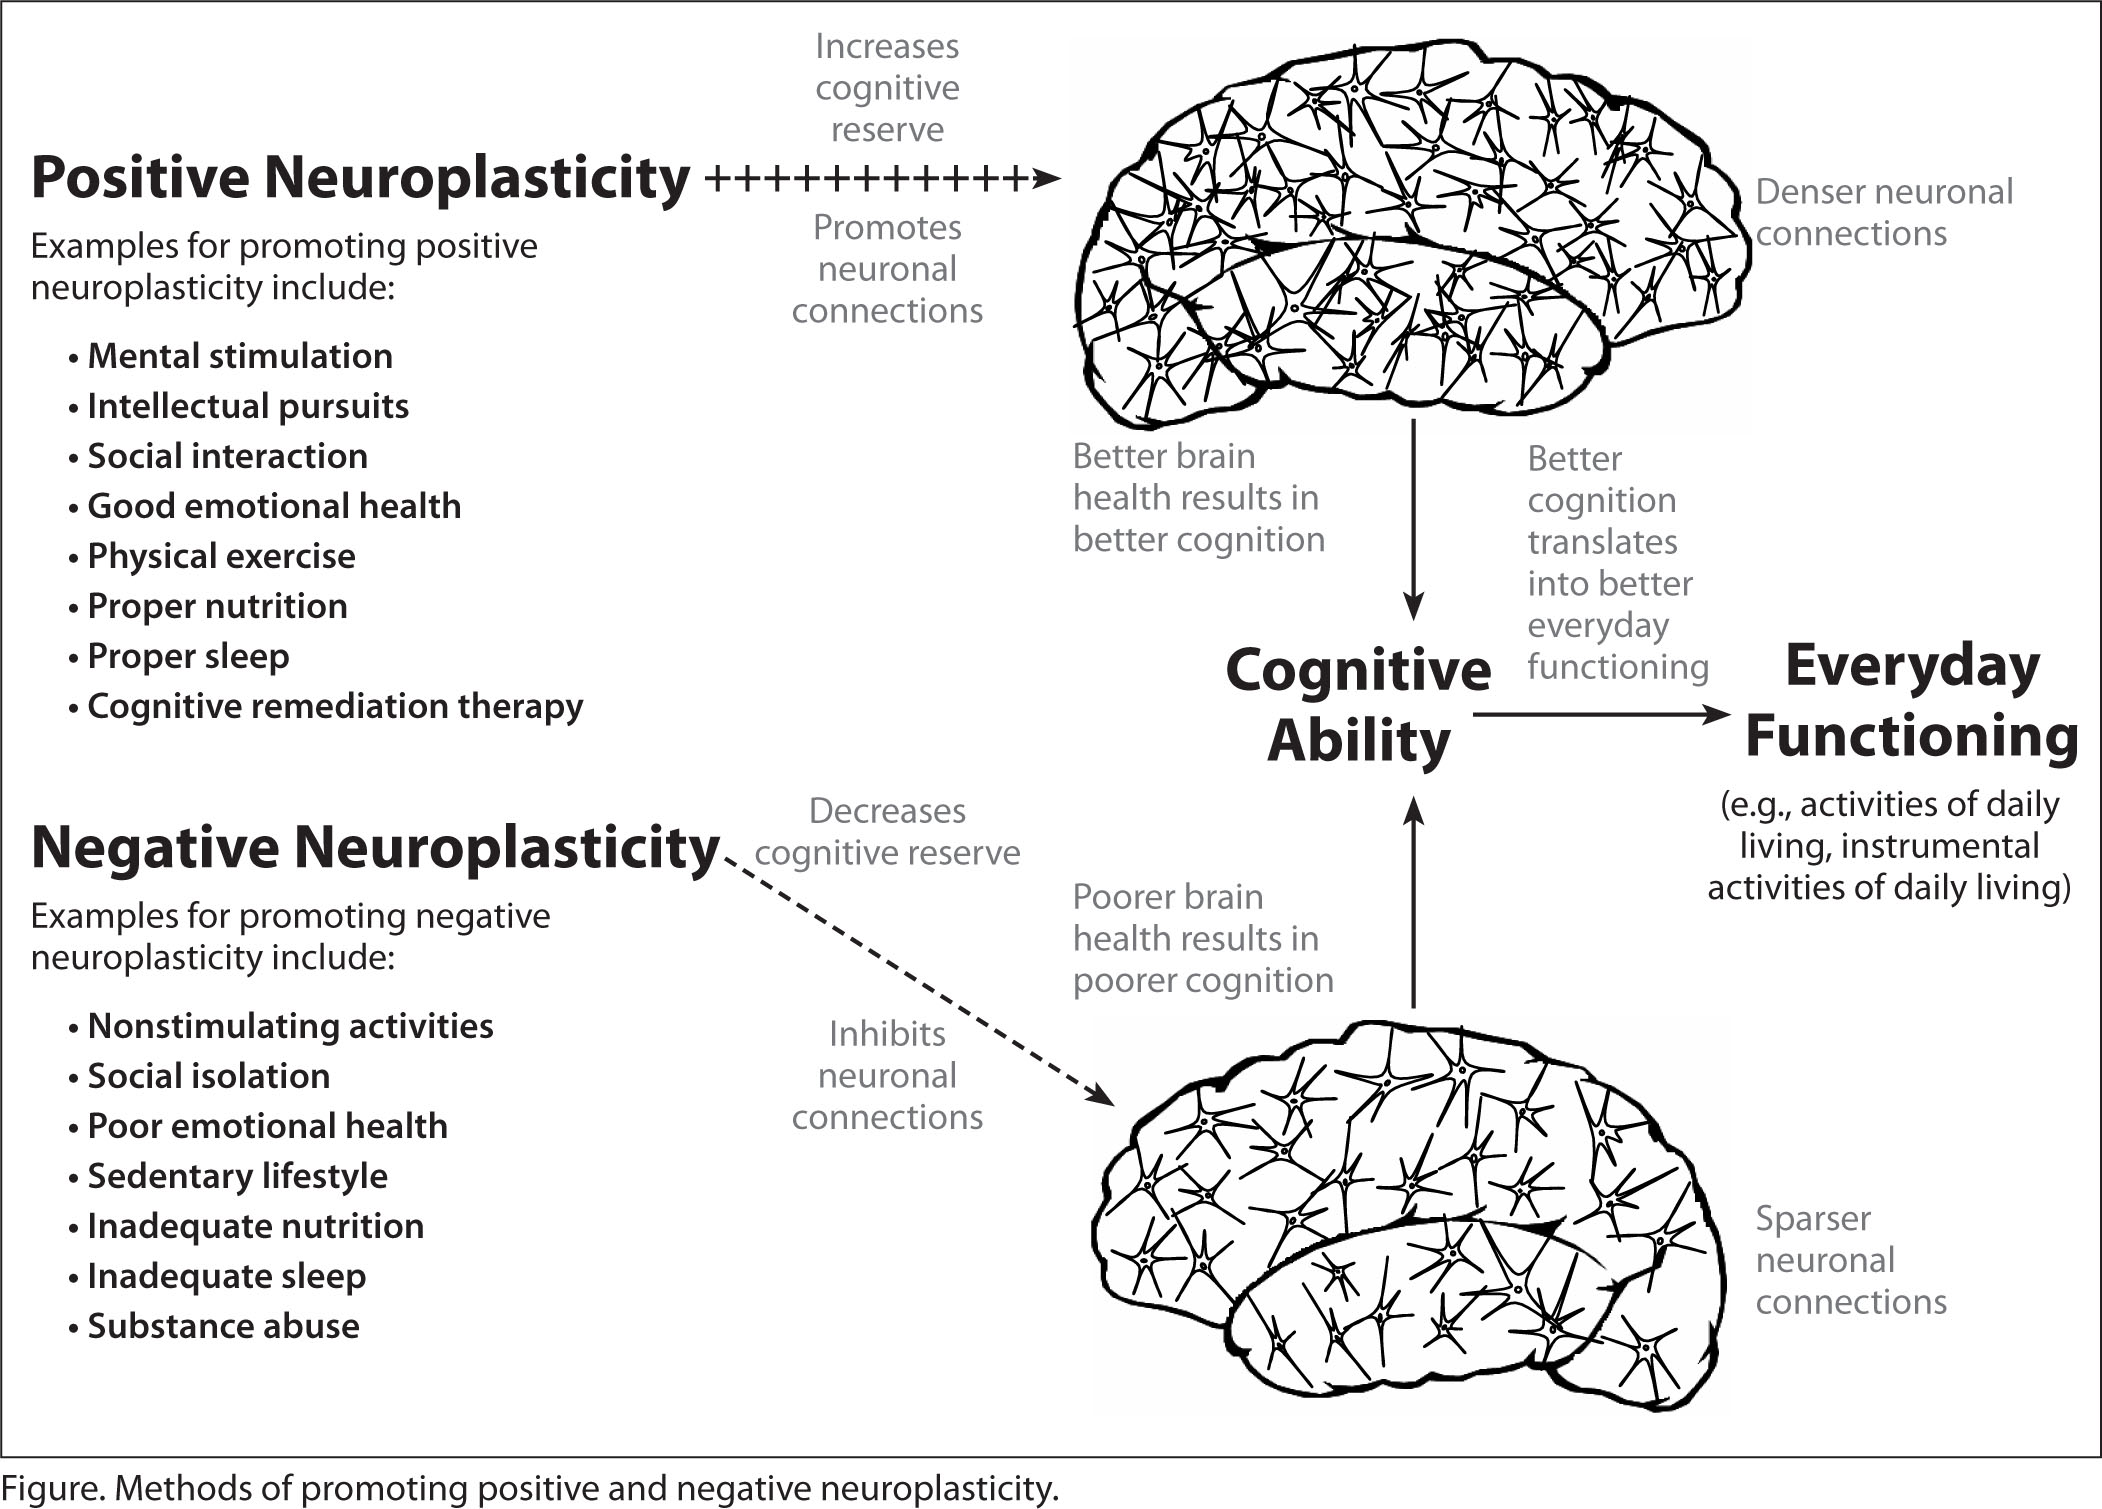 Methods of Promoting Positive and Negative Neuroplasticity.